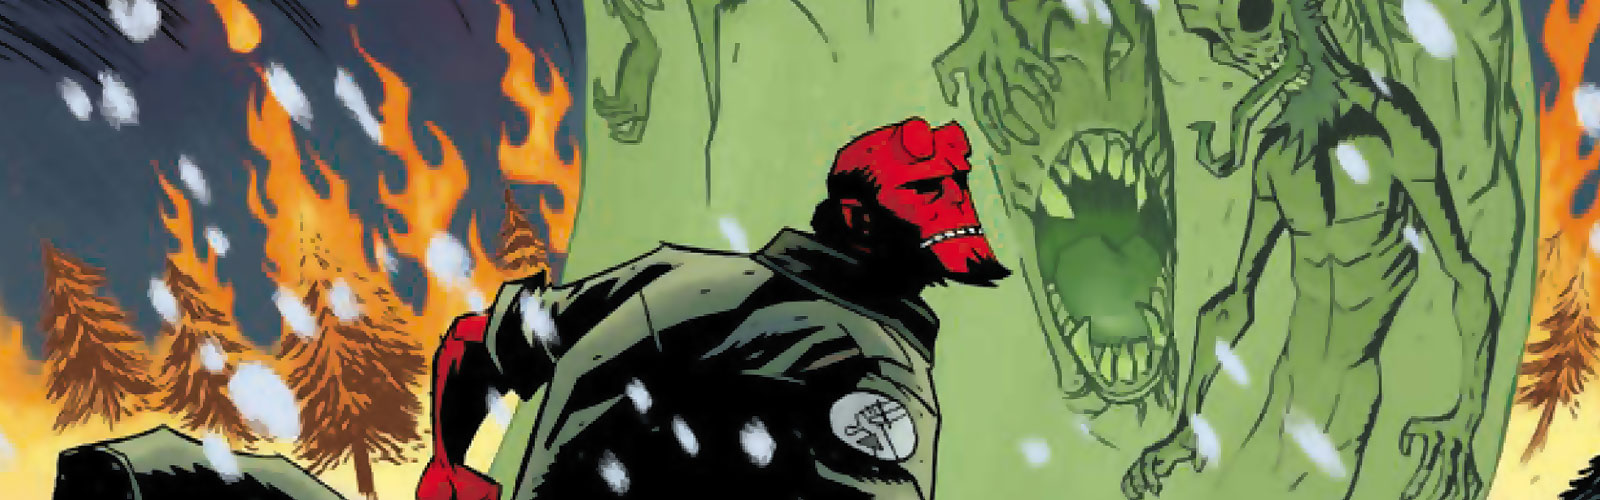 New Releases - 27-01-16: Hellboy - Winter Special